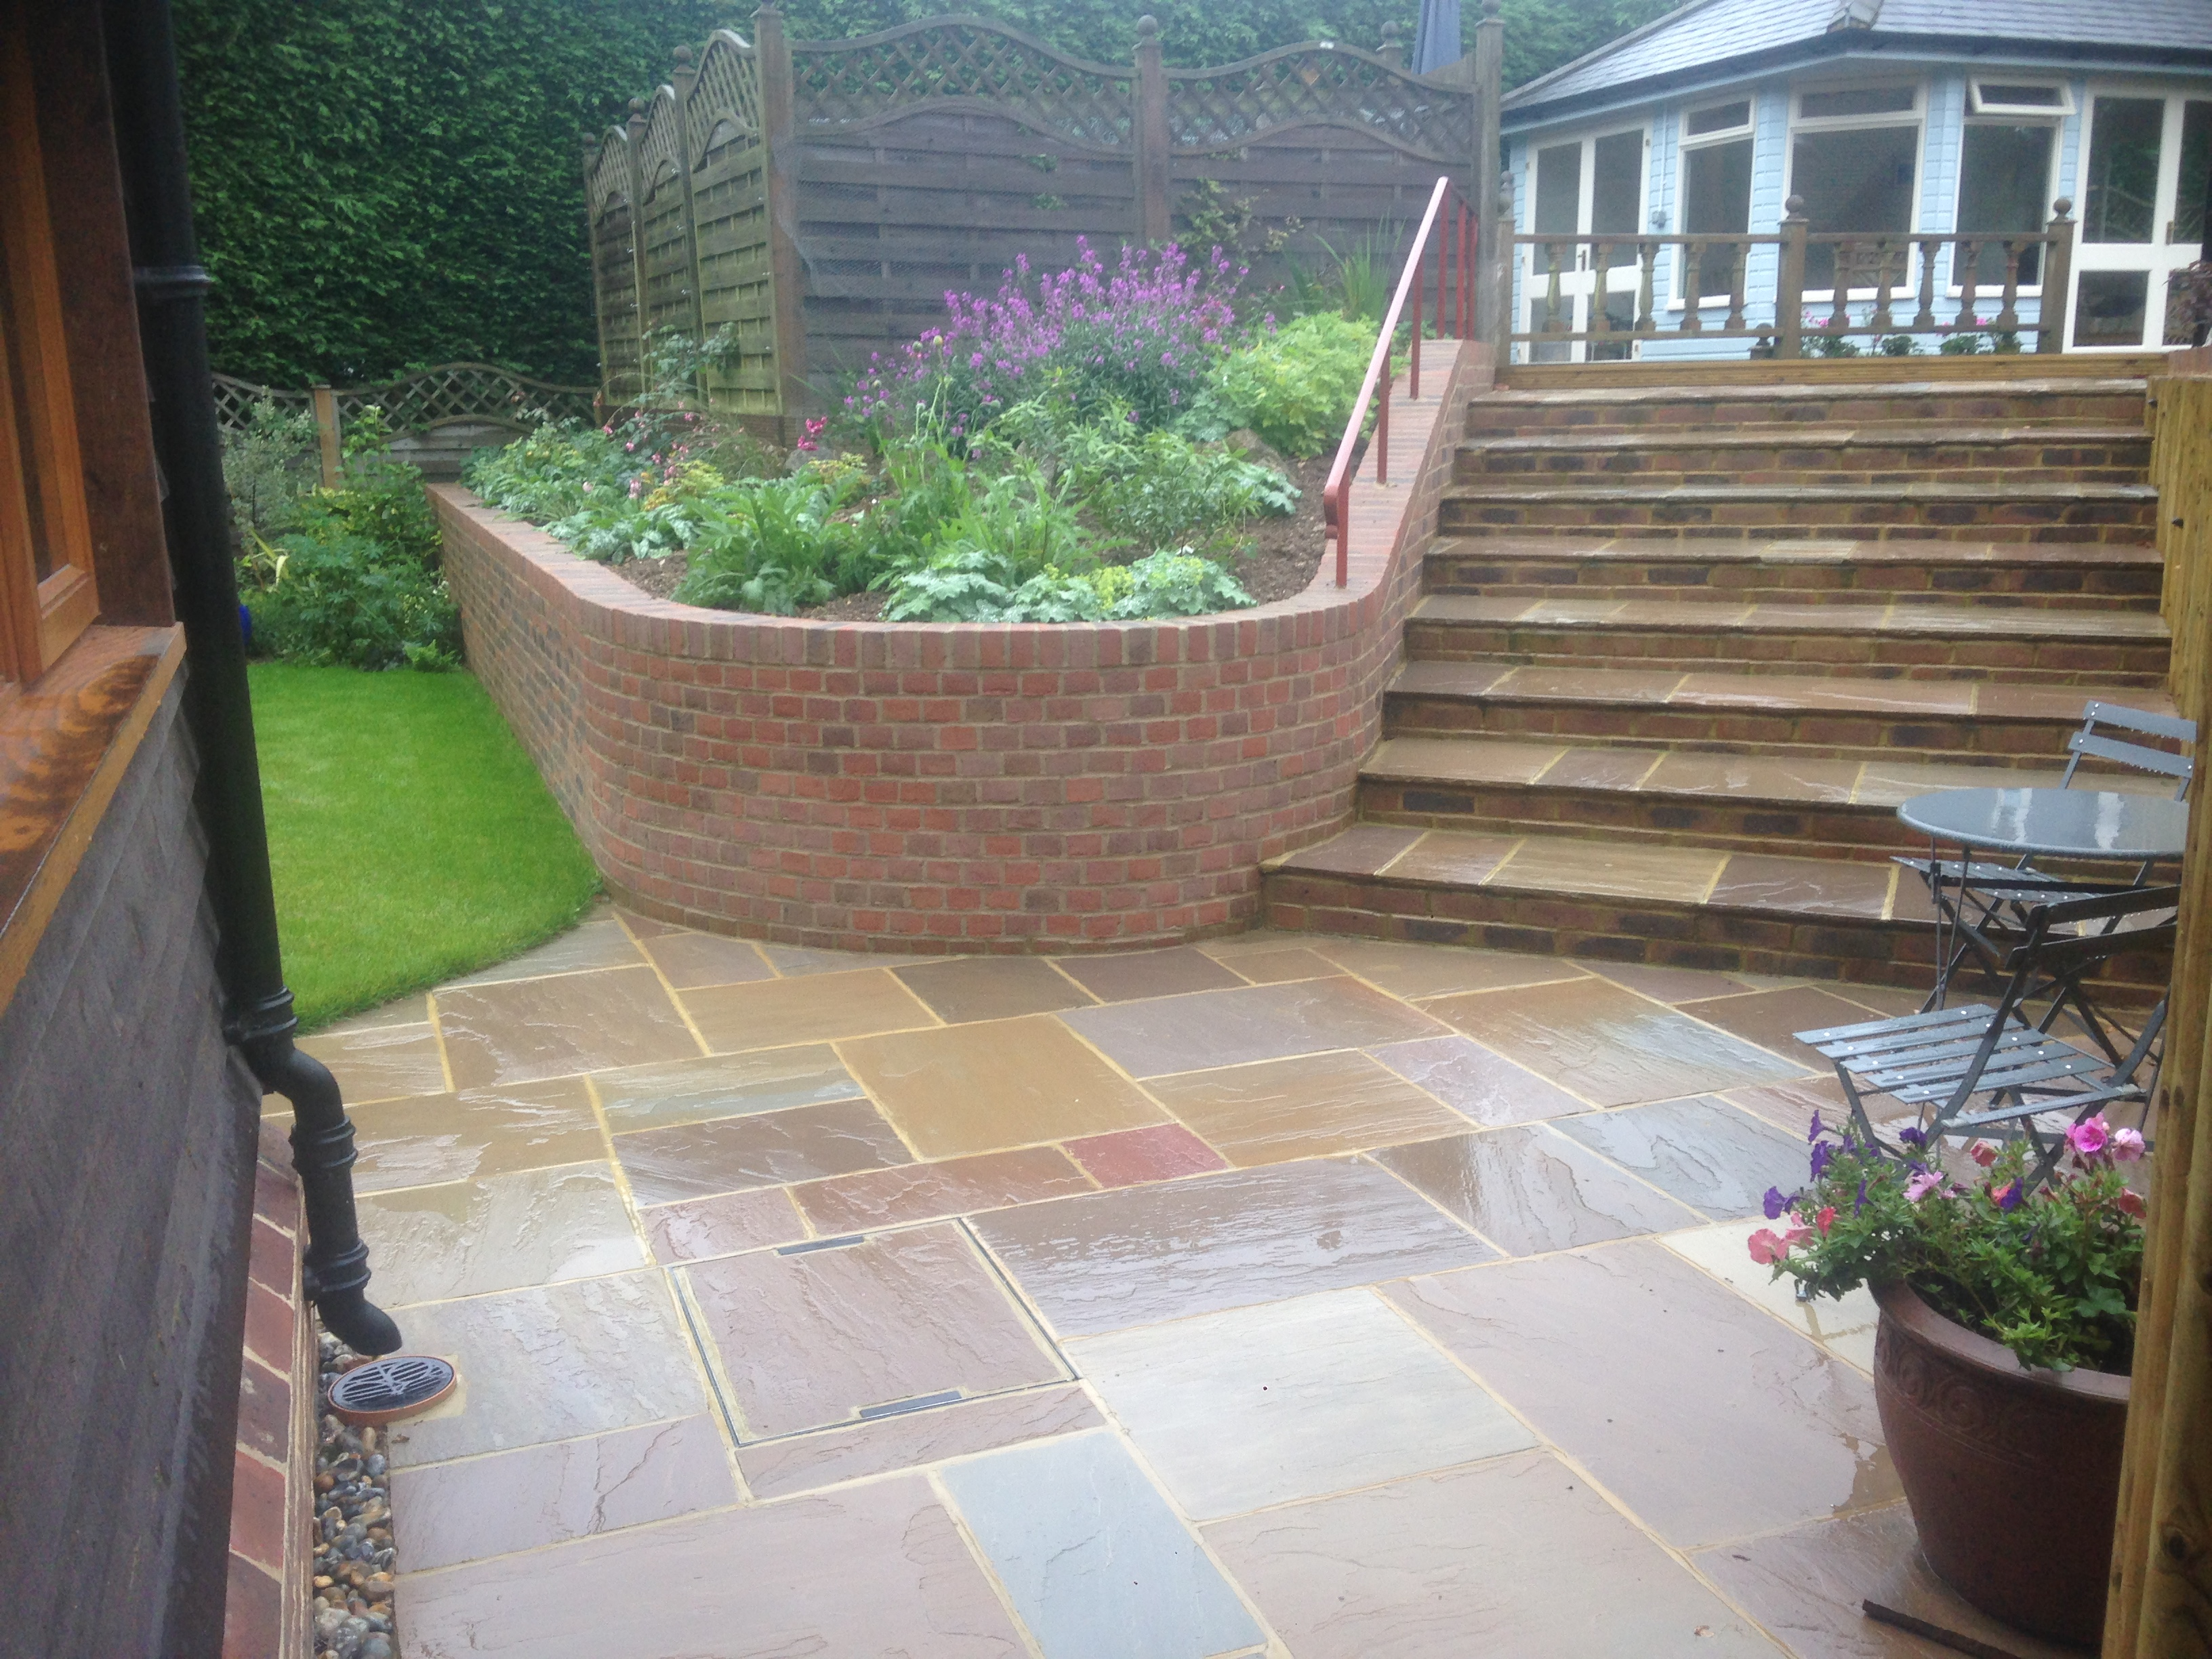 Large wide tiled steps and matching Patio in the billingshurst area